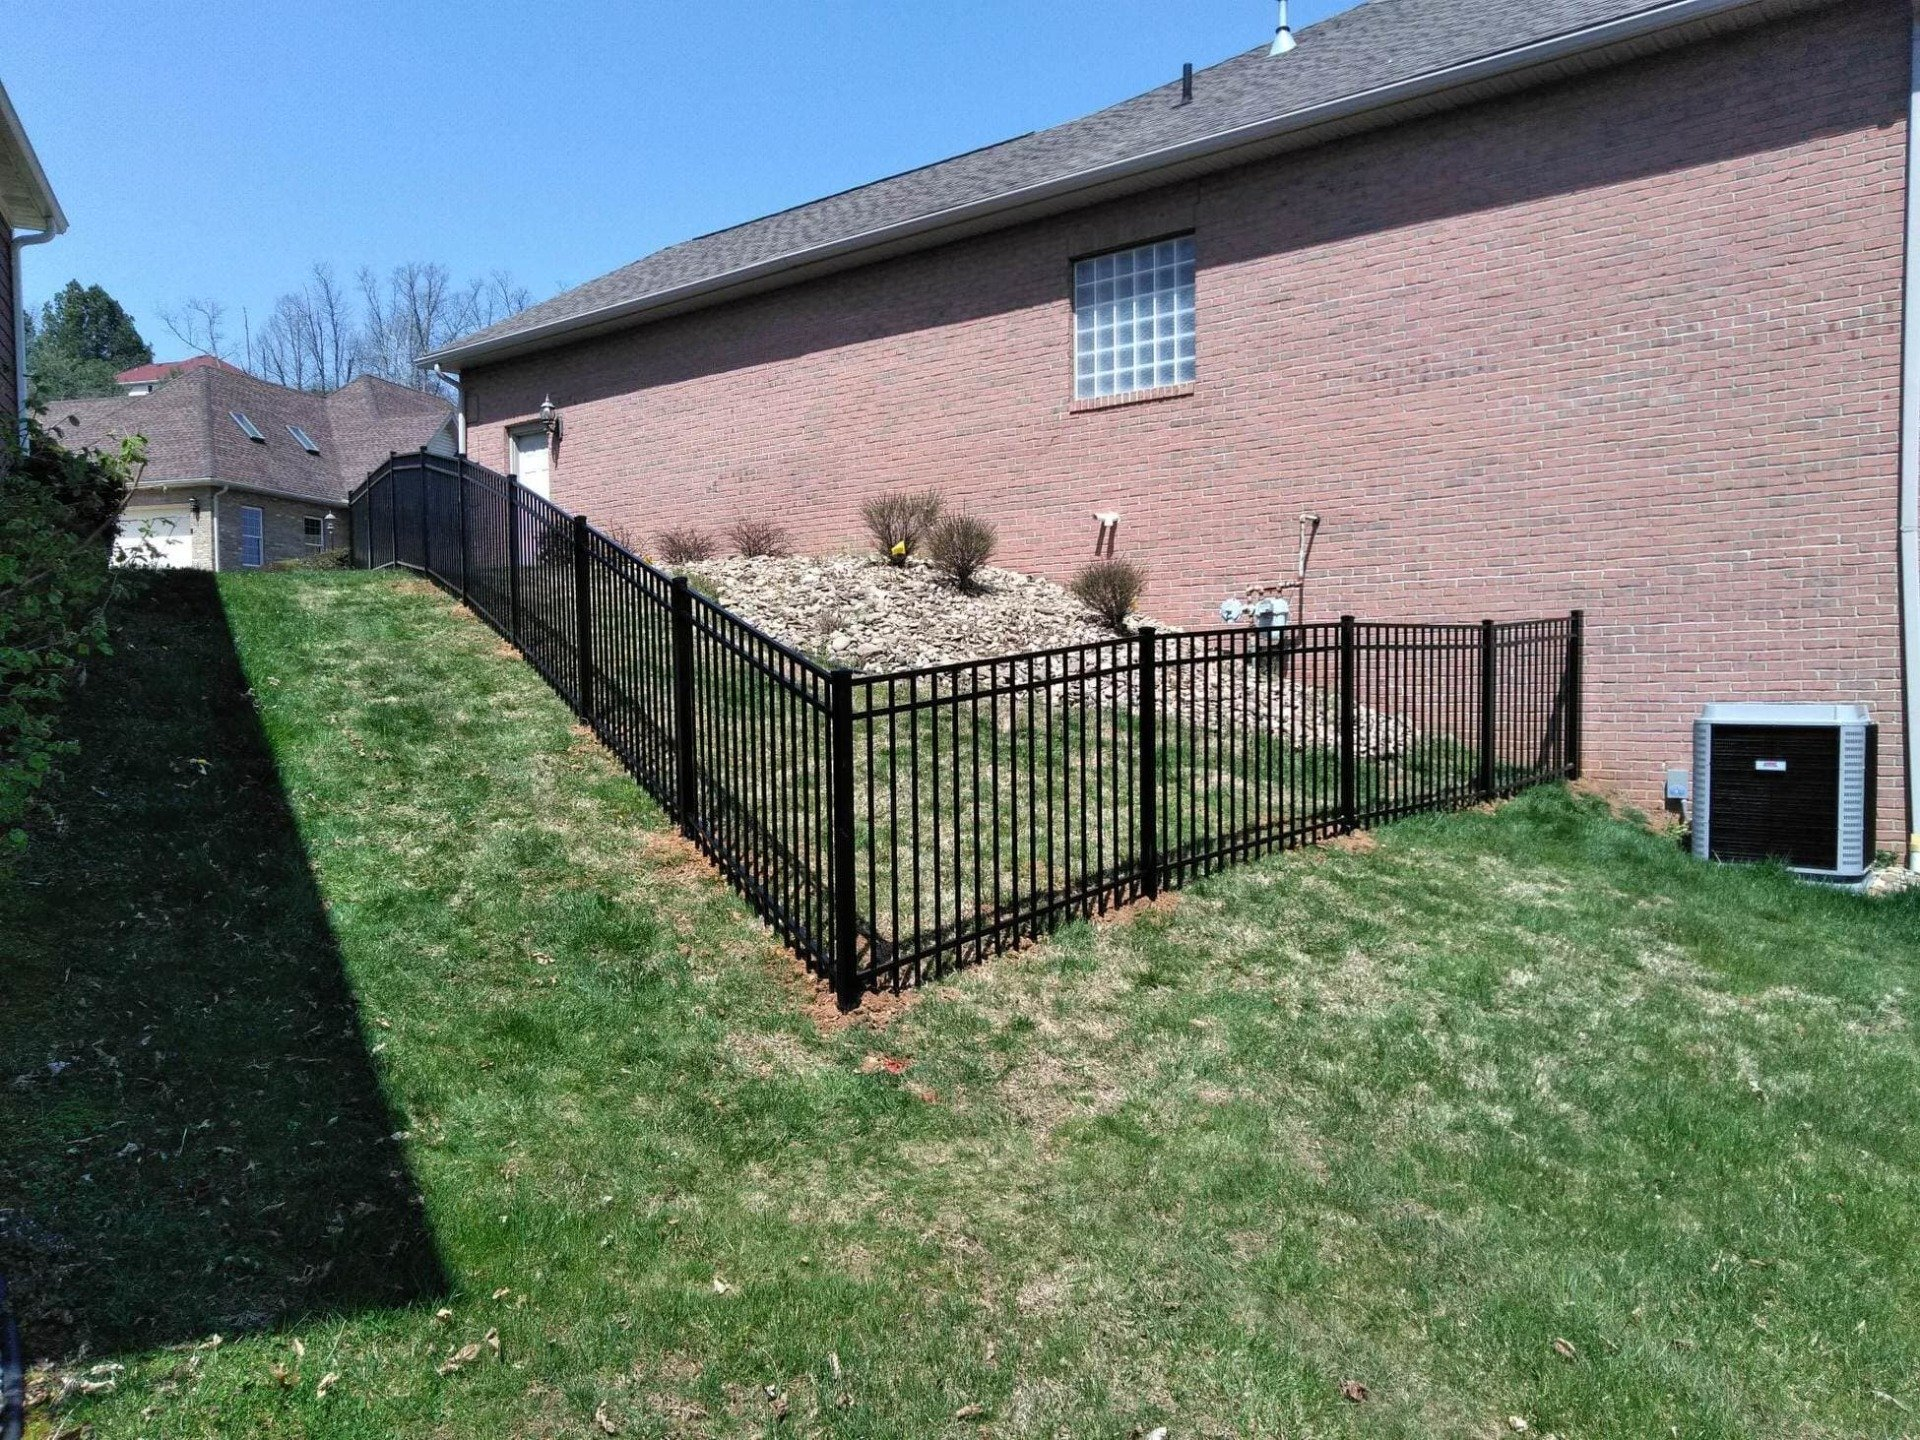 Black Ornamental Fence Around Yard - Fencing in Fairmont and Vienna WV & Residential Ornamental Fencing - West Virginia Ohio and ...